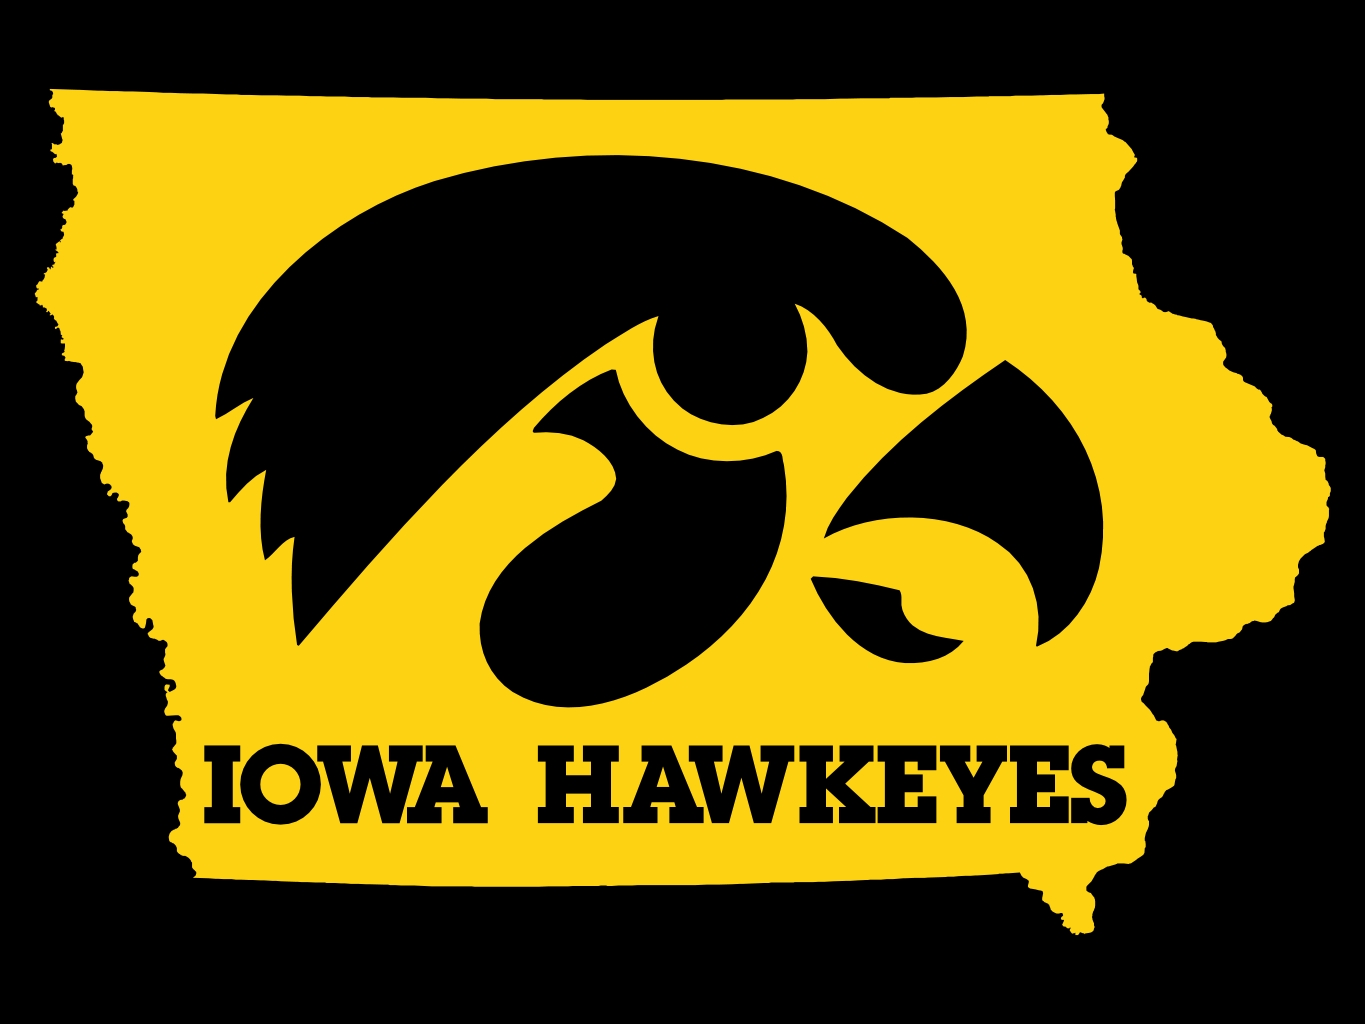 Iowa Hawkeyes Tickets